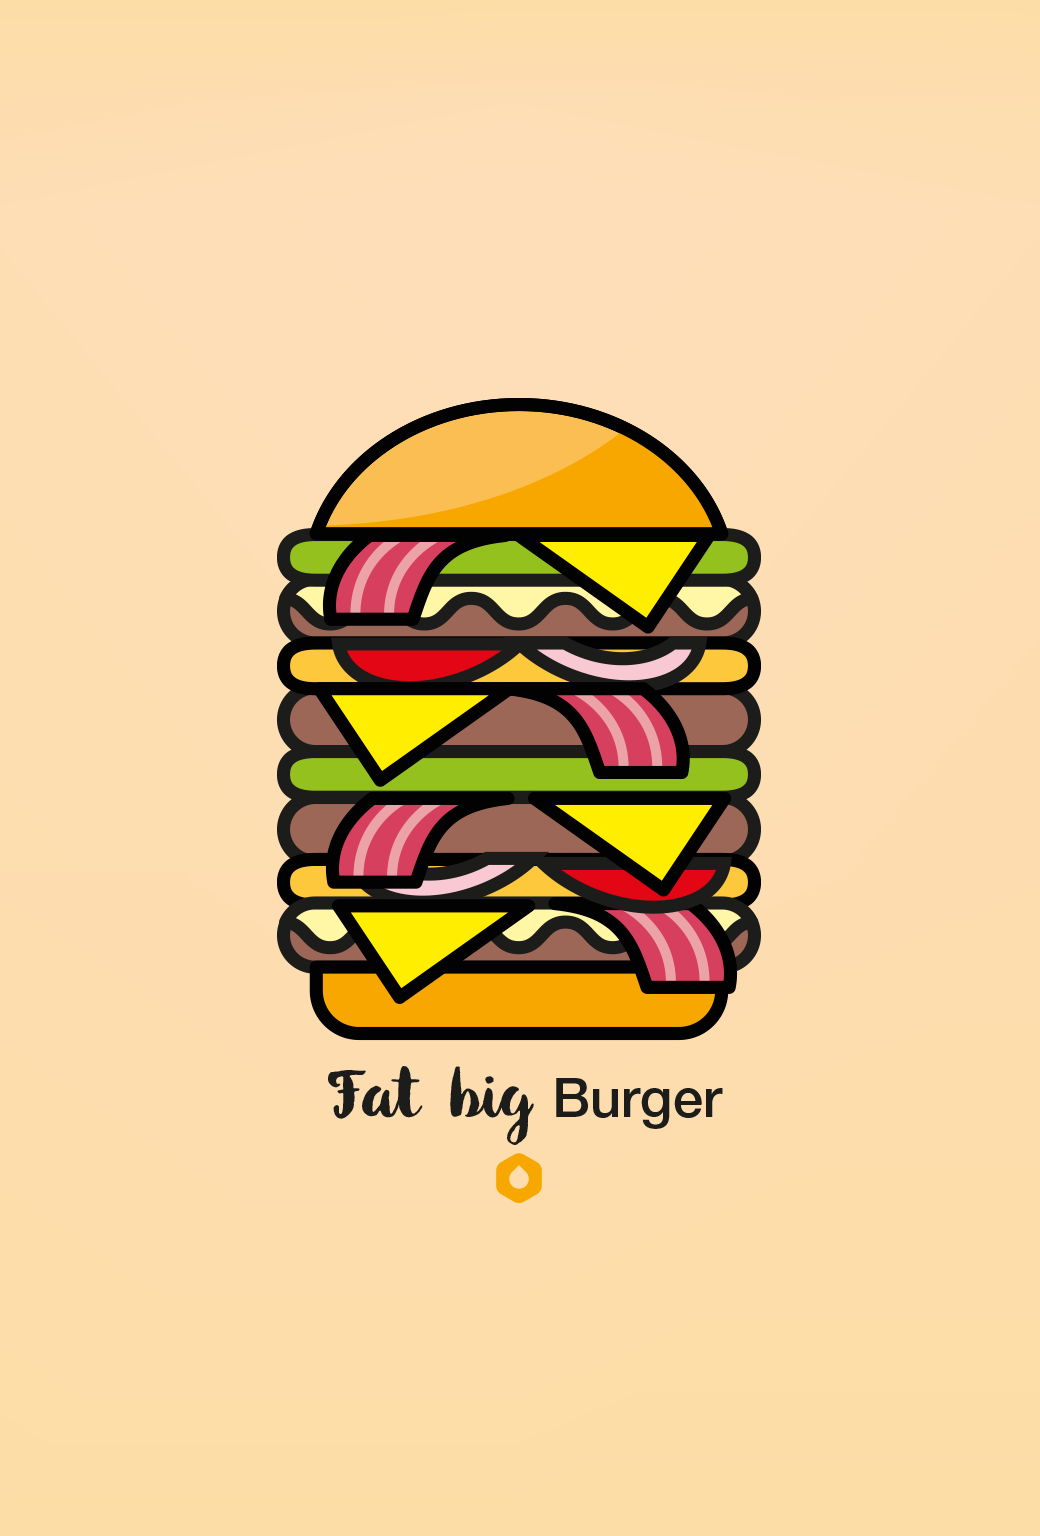 Wallpaper Pick Your Burger - iPhone5 - FatBig